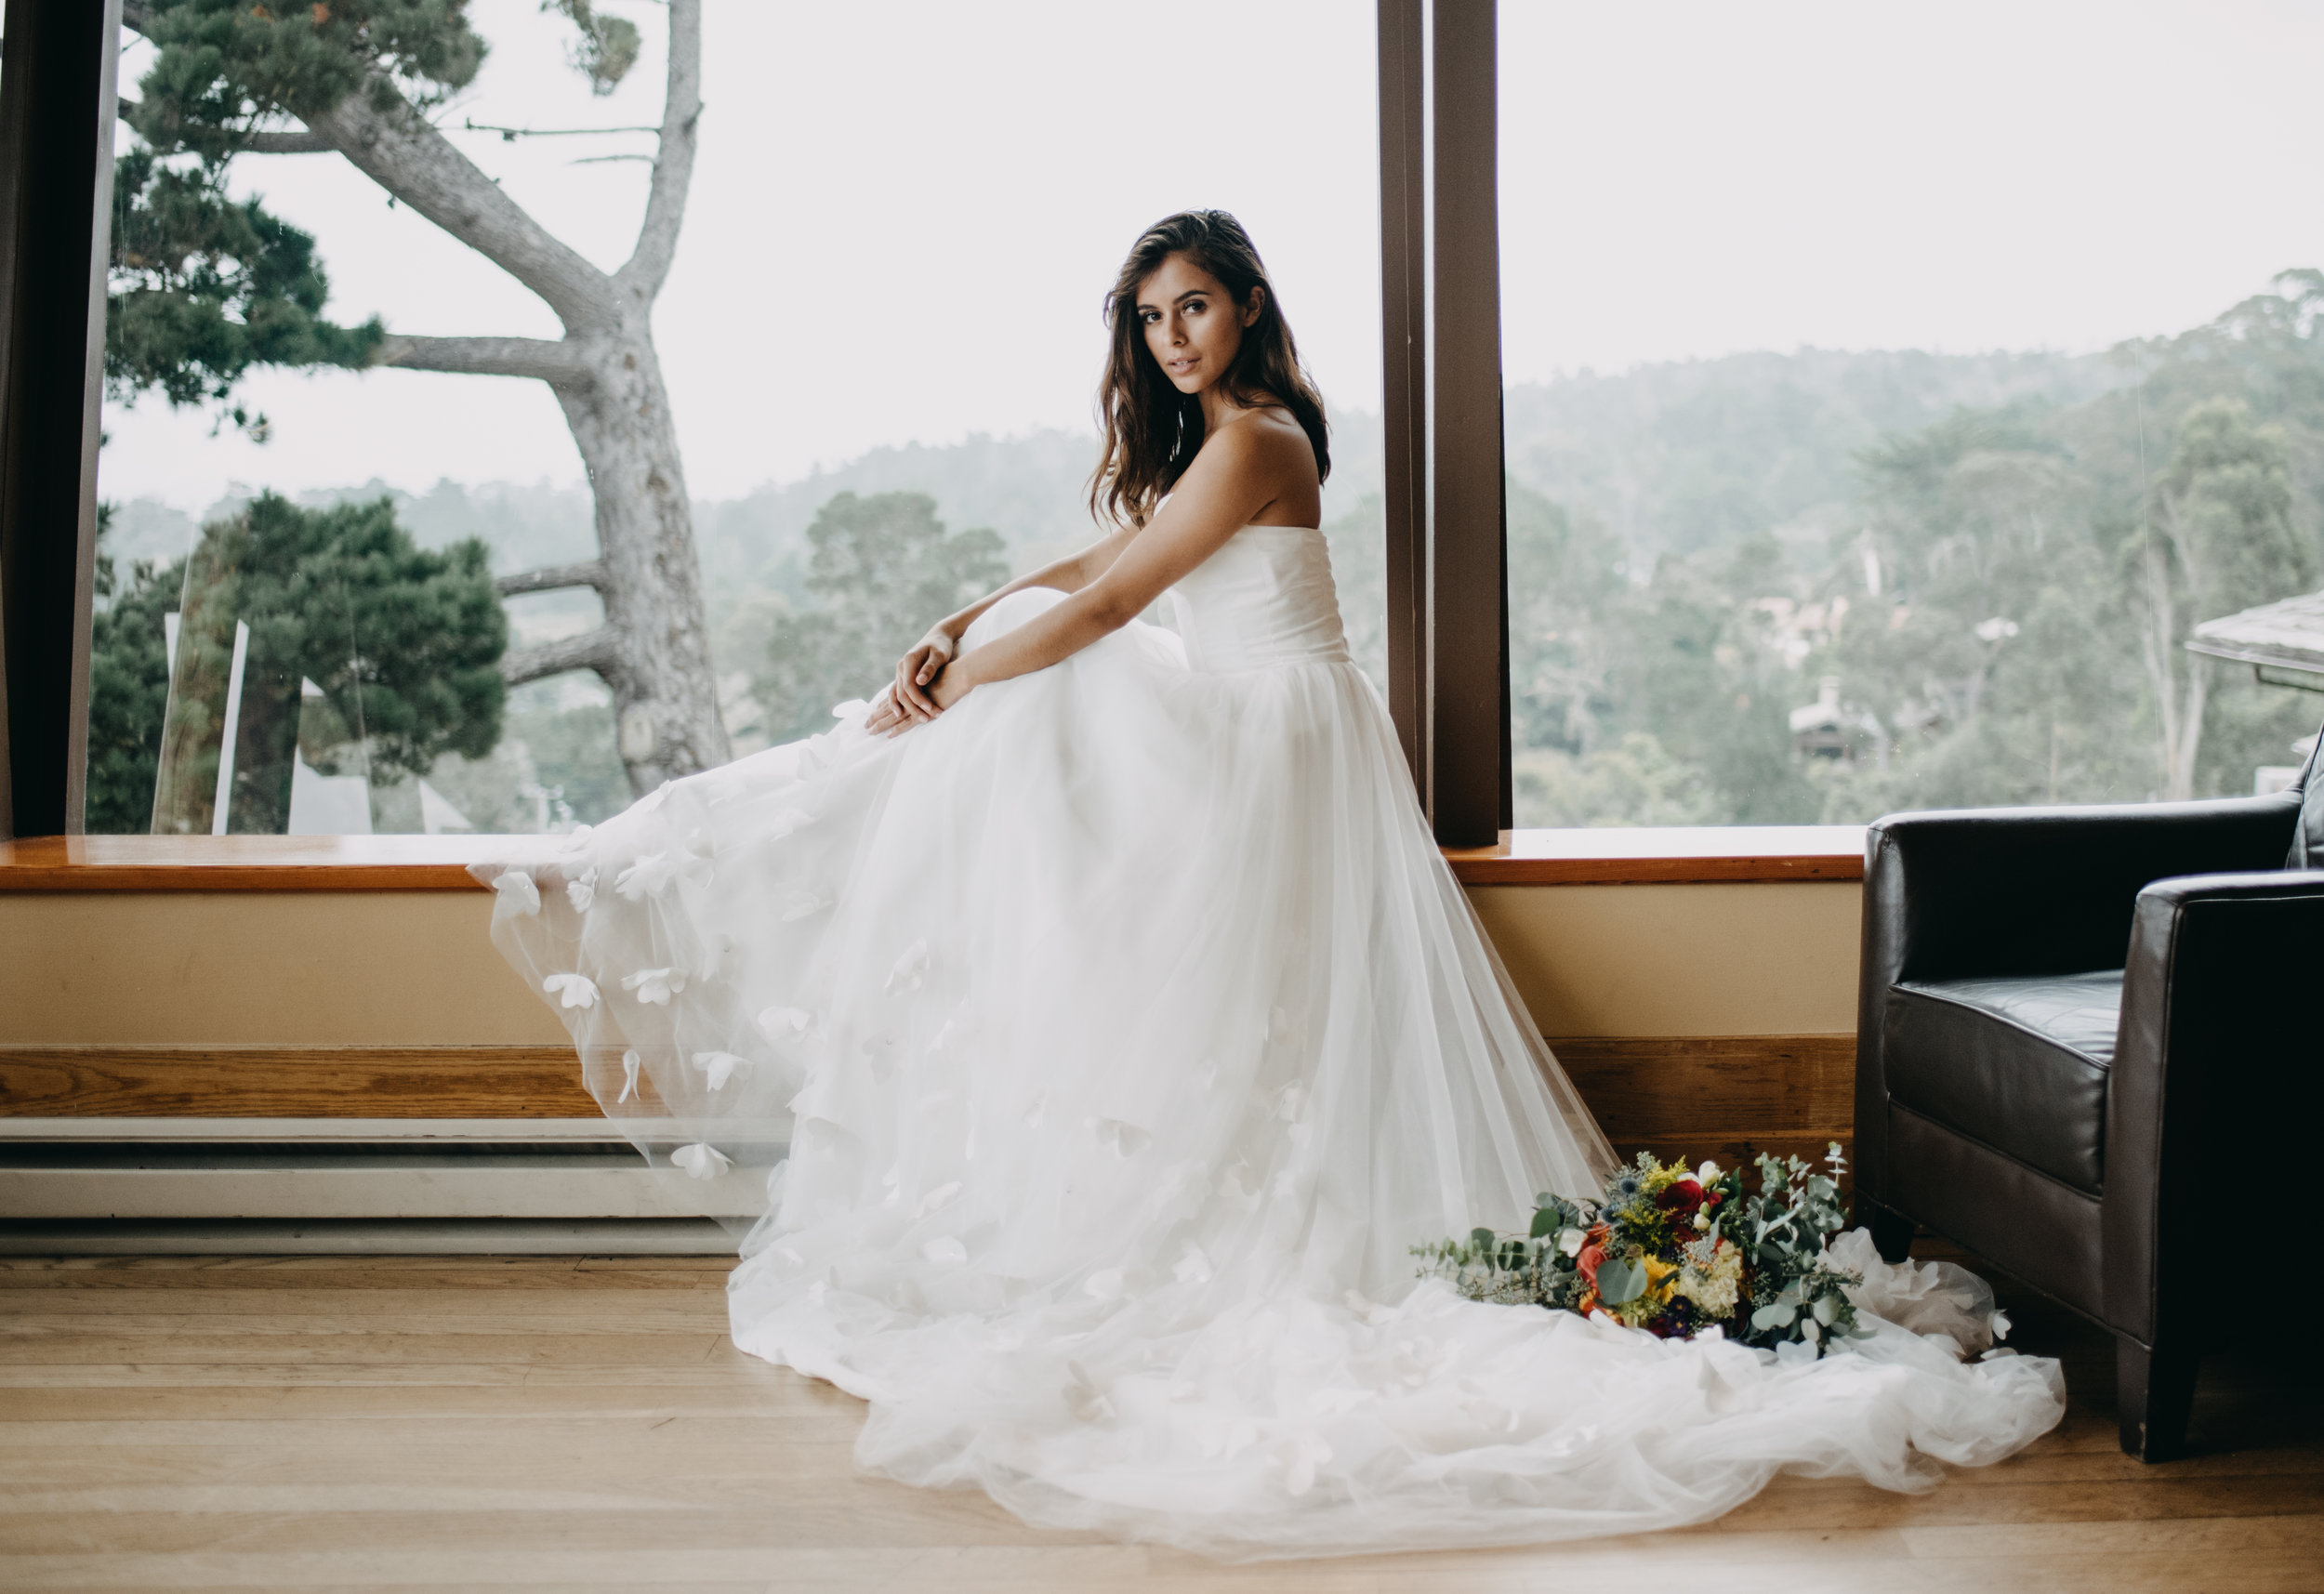 luxury resort wedding photos interior, simple pretty wedding dress with 3D floral details and tulle